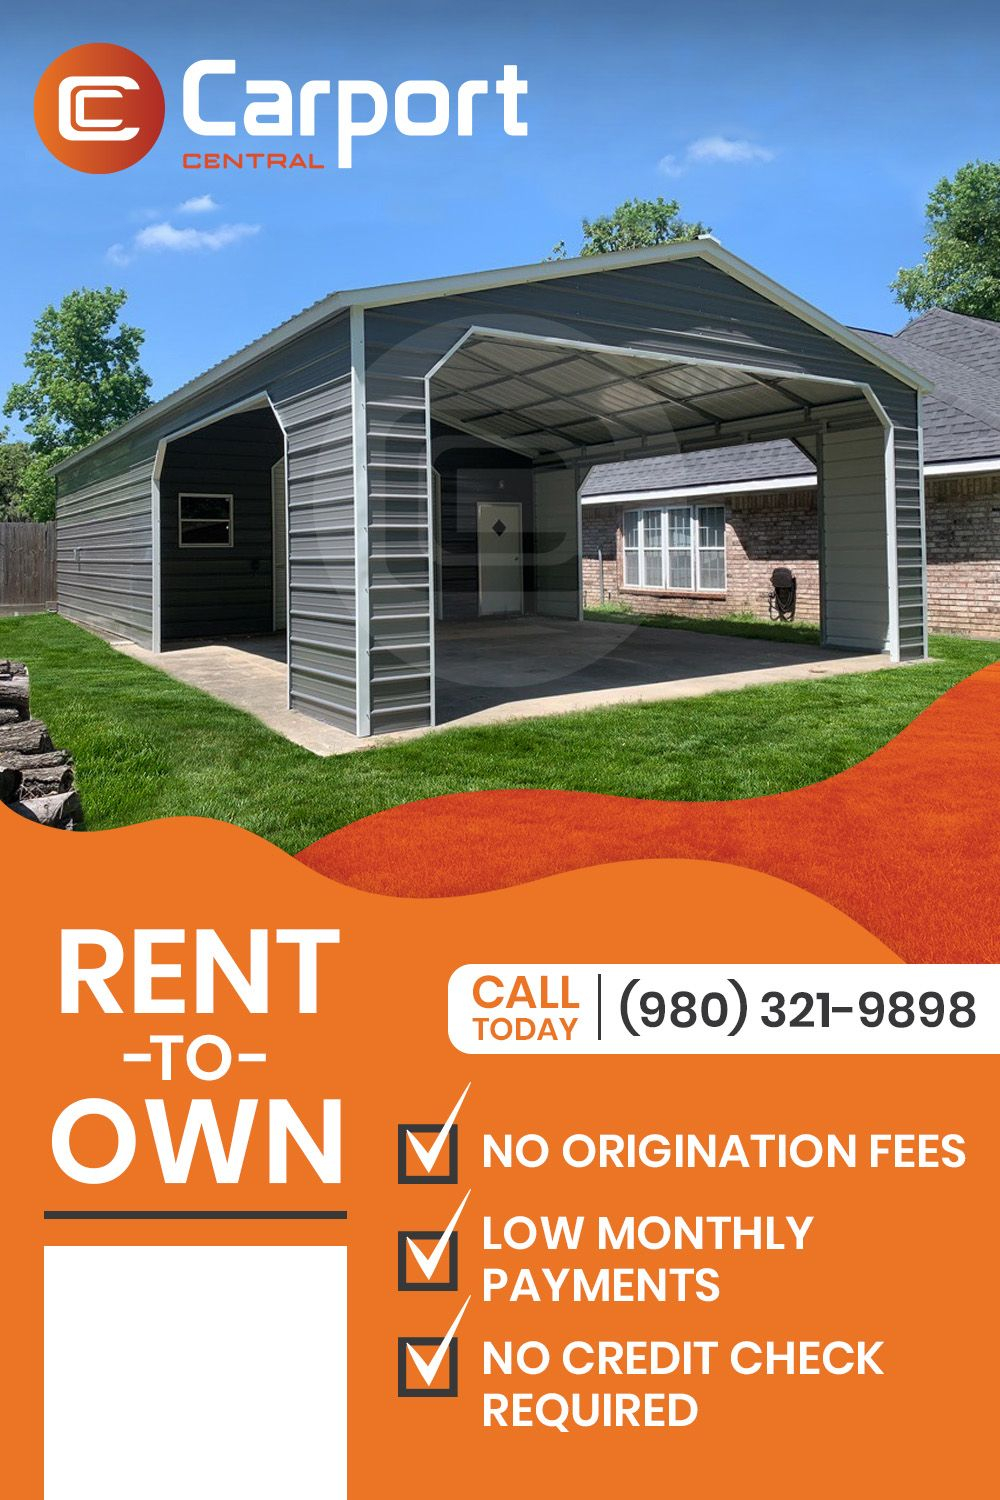 Rent to Own with Carport Central! in 2020 Carport, Metal